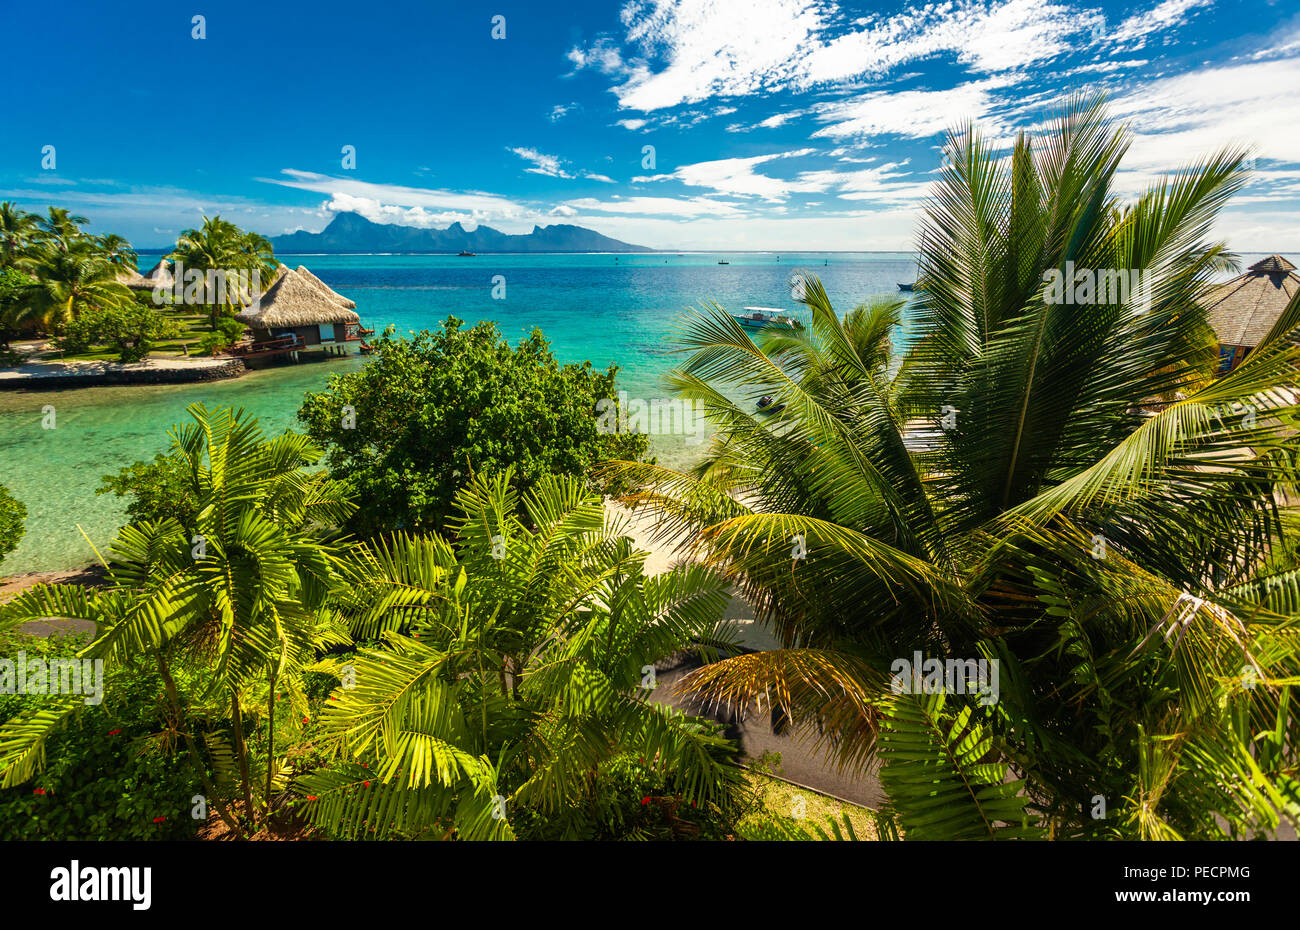 Overwater bungalows with best beach for snorkeling, Tahiti, French Polynesia, Moorea in the background - Stock Image